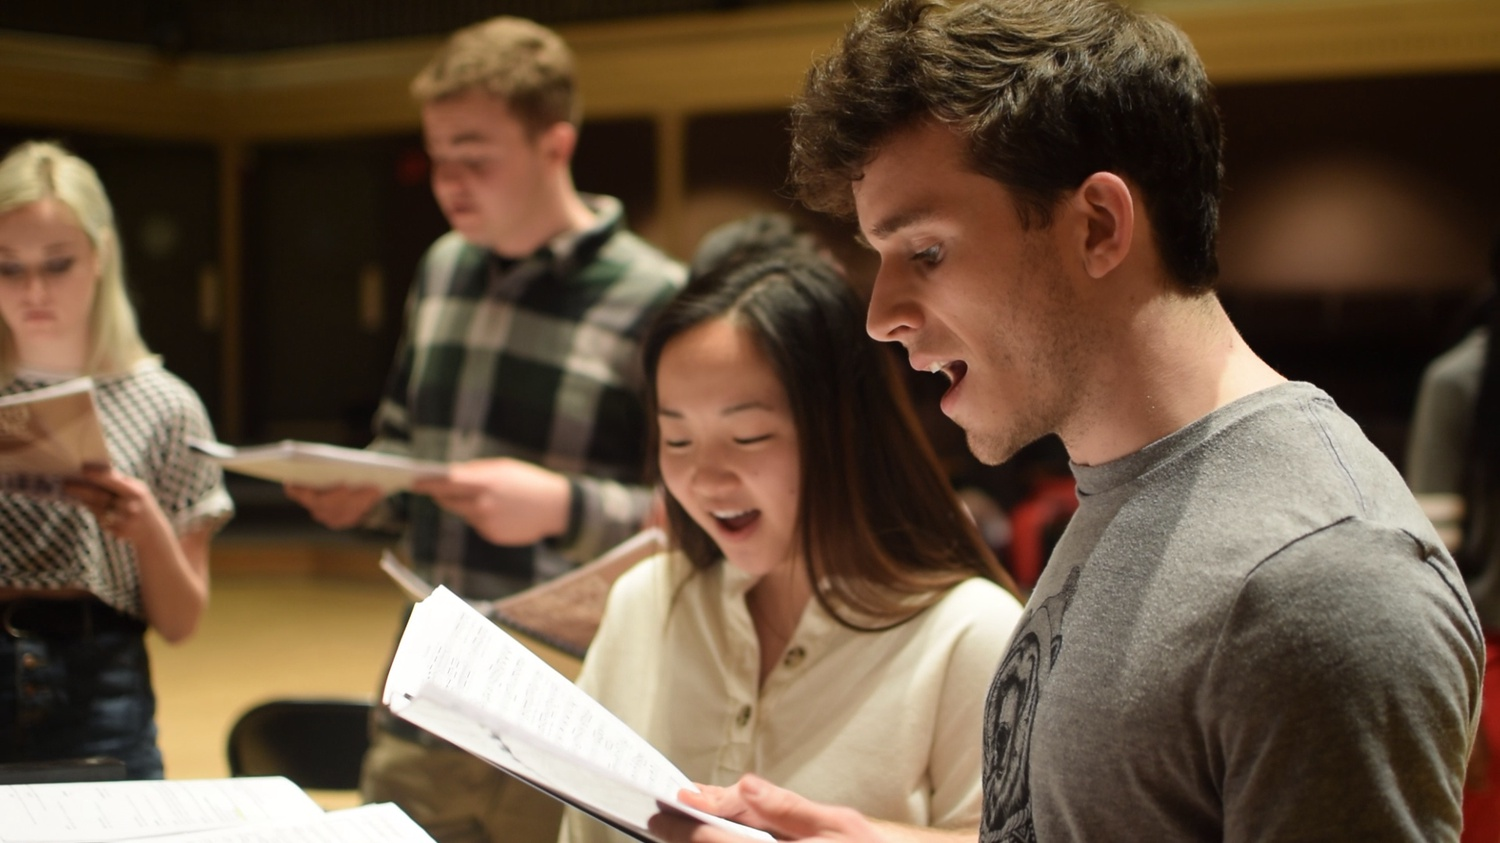 """Nico P. Barlos '22 and Odessa X. Deng '22 play a young couple embroiled in chaos aboard a flight to London in """"Cruising Altitude,"""" this year's First-Year Musical."""